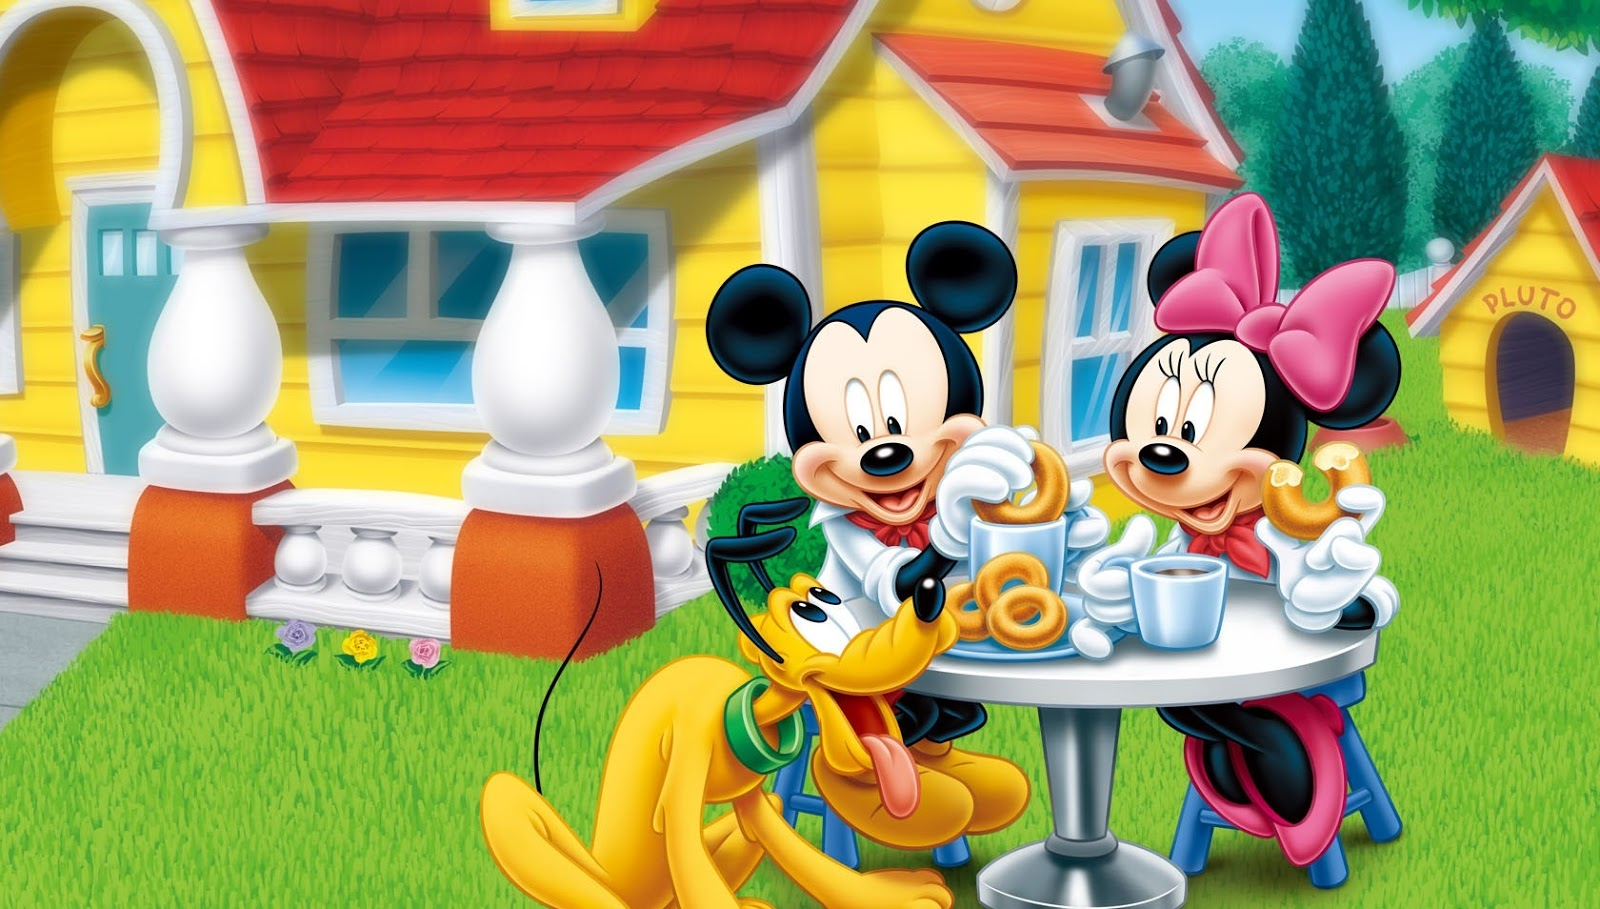 3d Cartoon Wallpapers Download Micky Mouse Hd Free For Desktop Download Hd Wallpaper